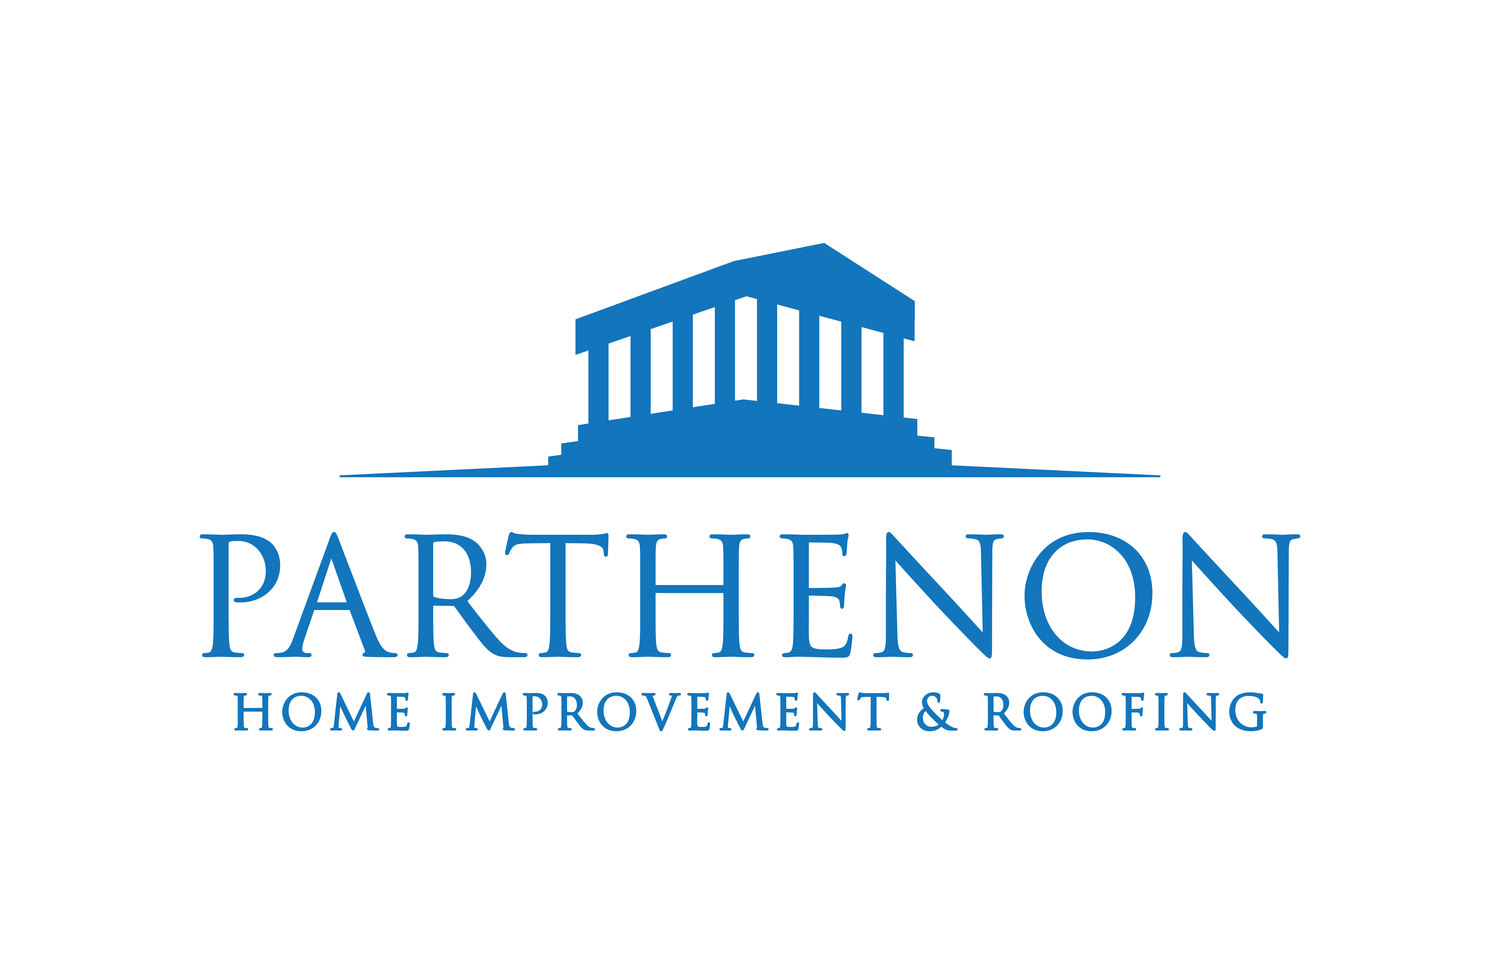 Parthenon Home Improvement & Roofing